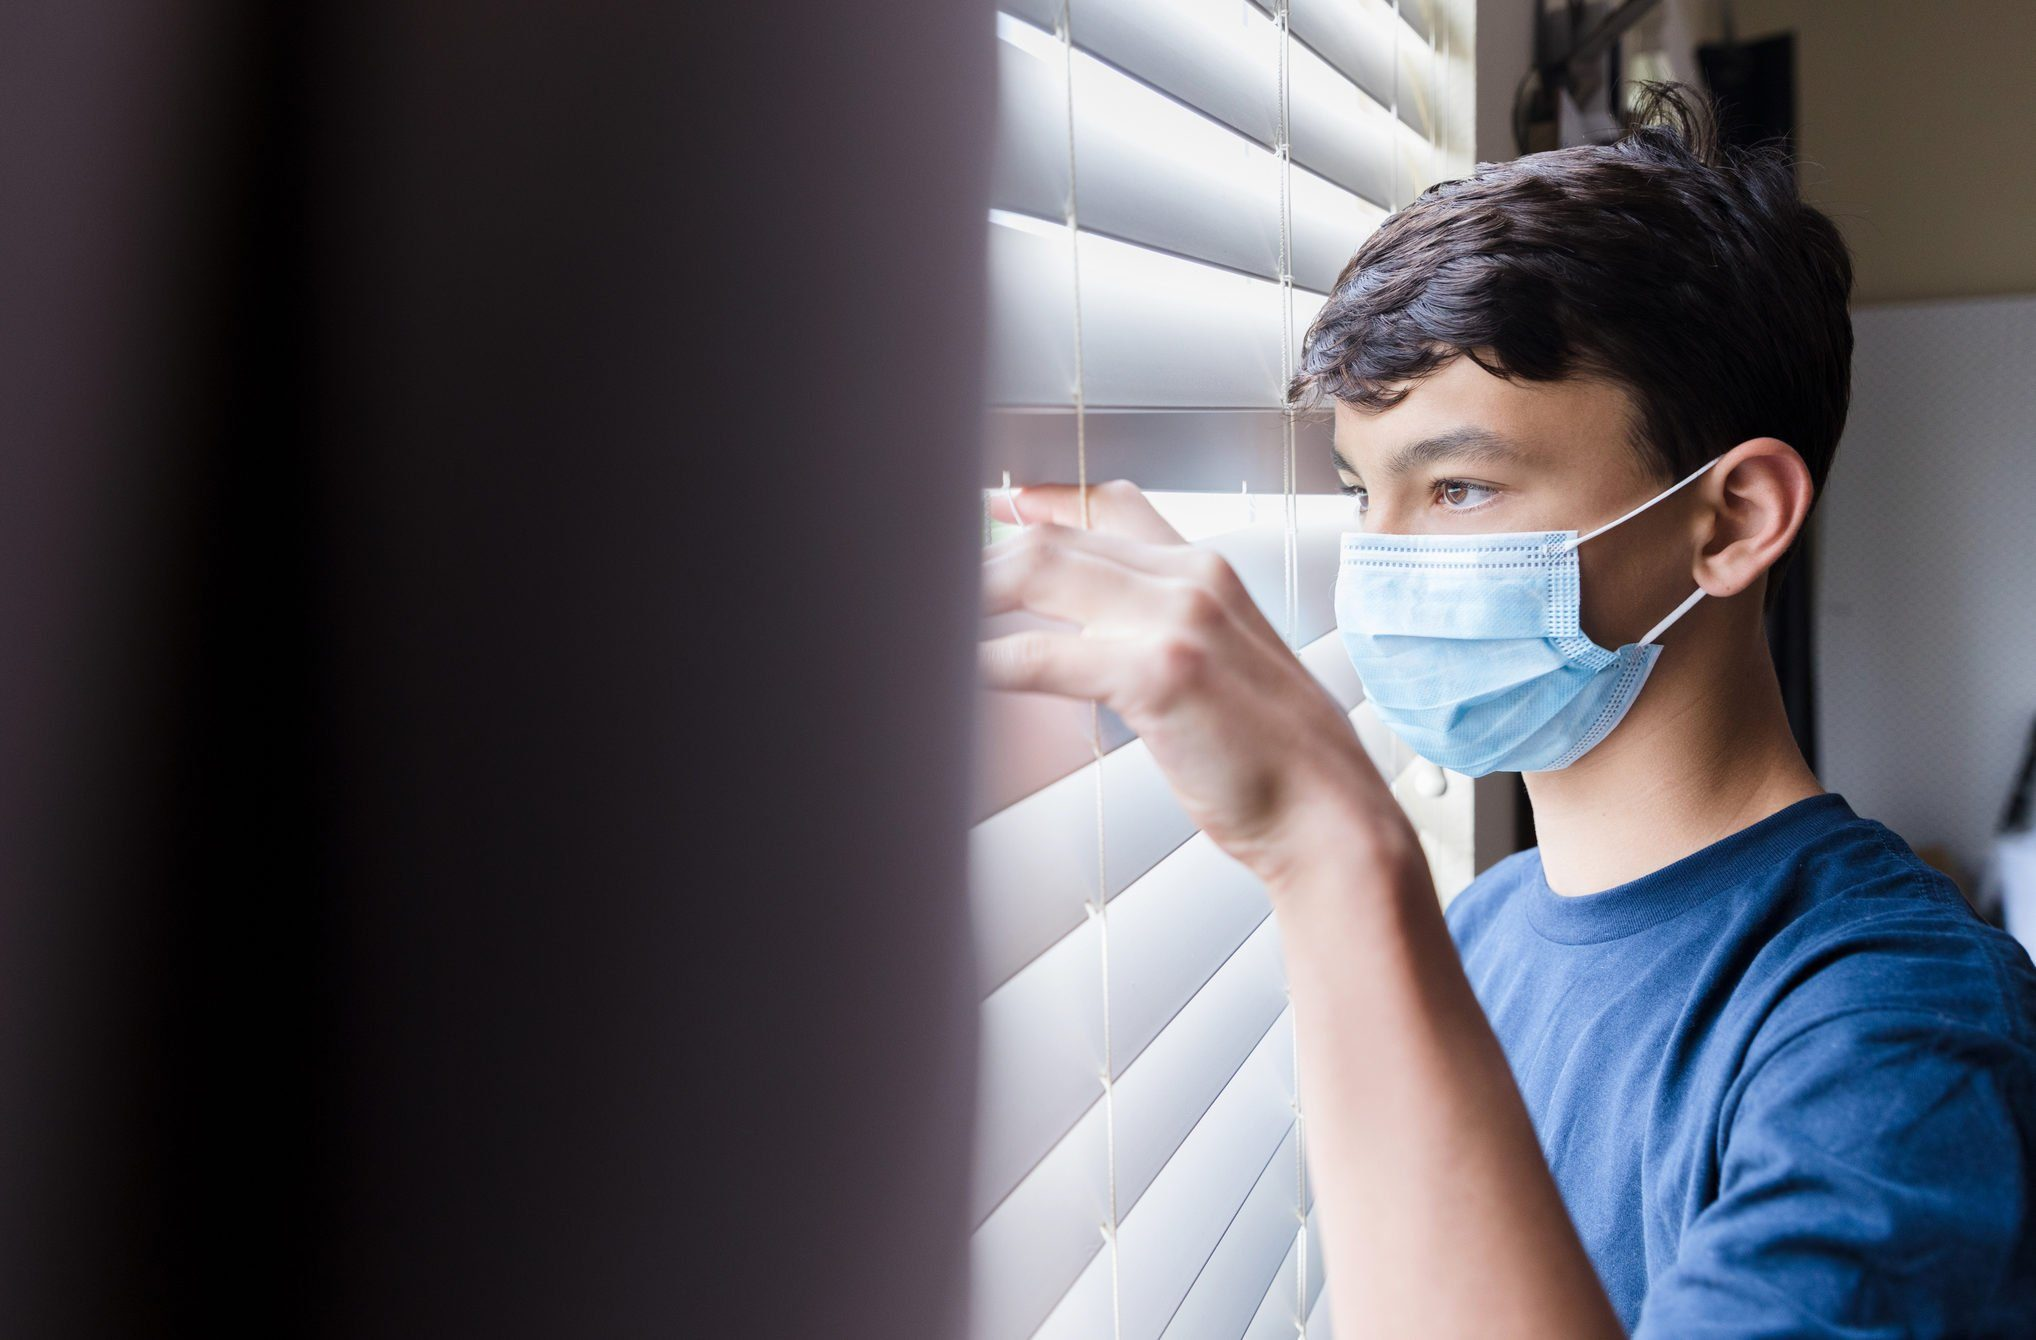 During COVID-19, quarantined boy wearing mask looks through blinds